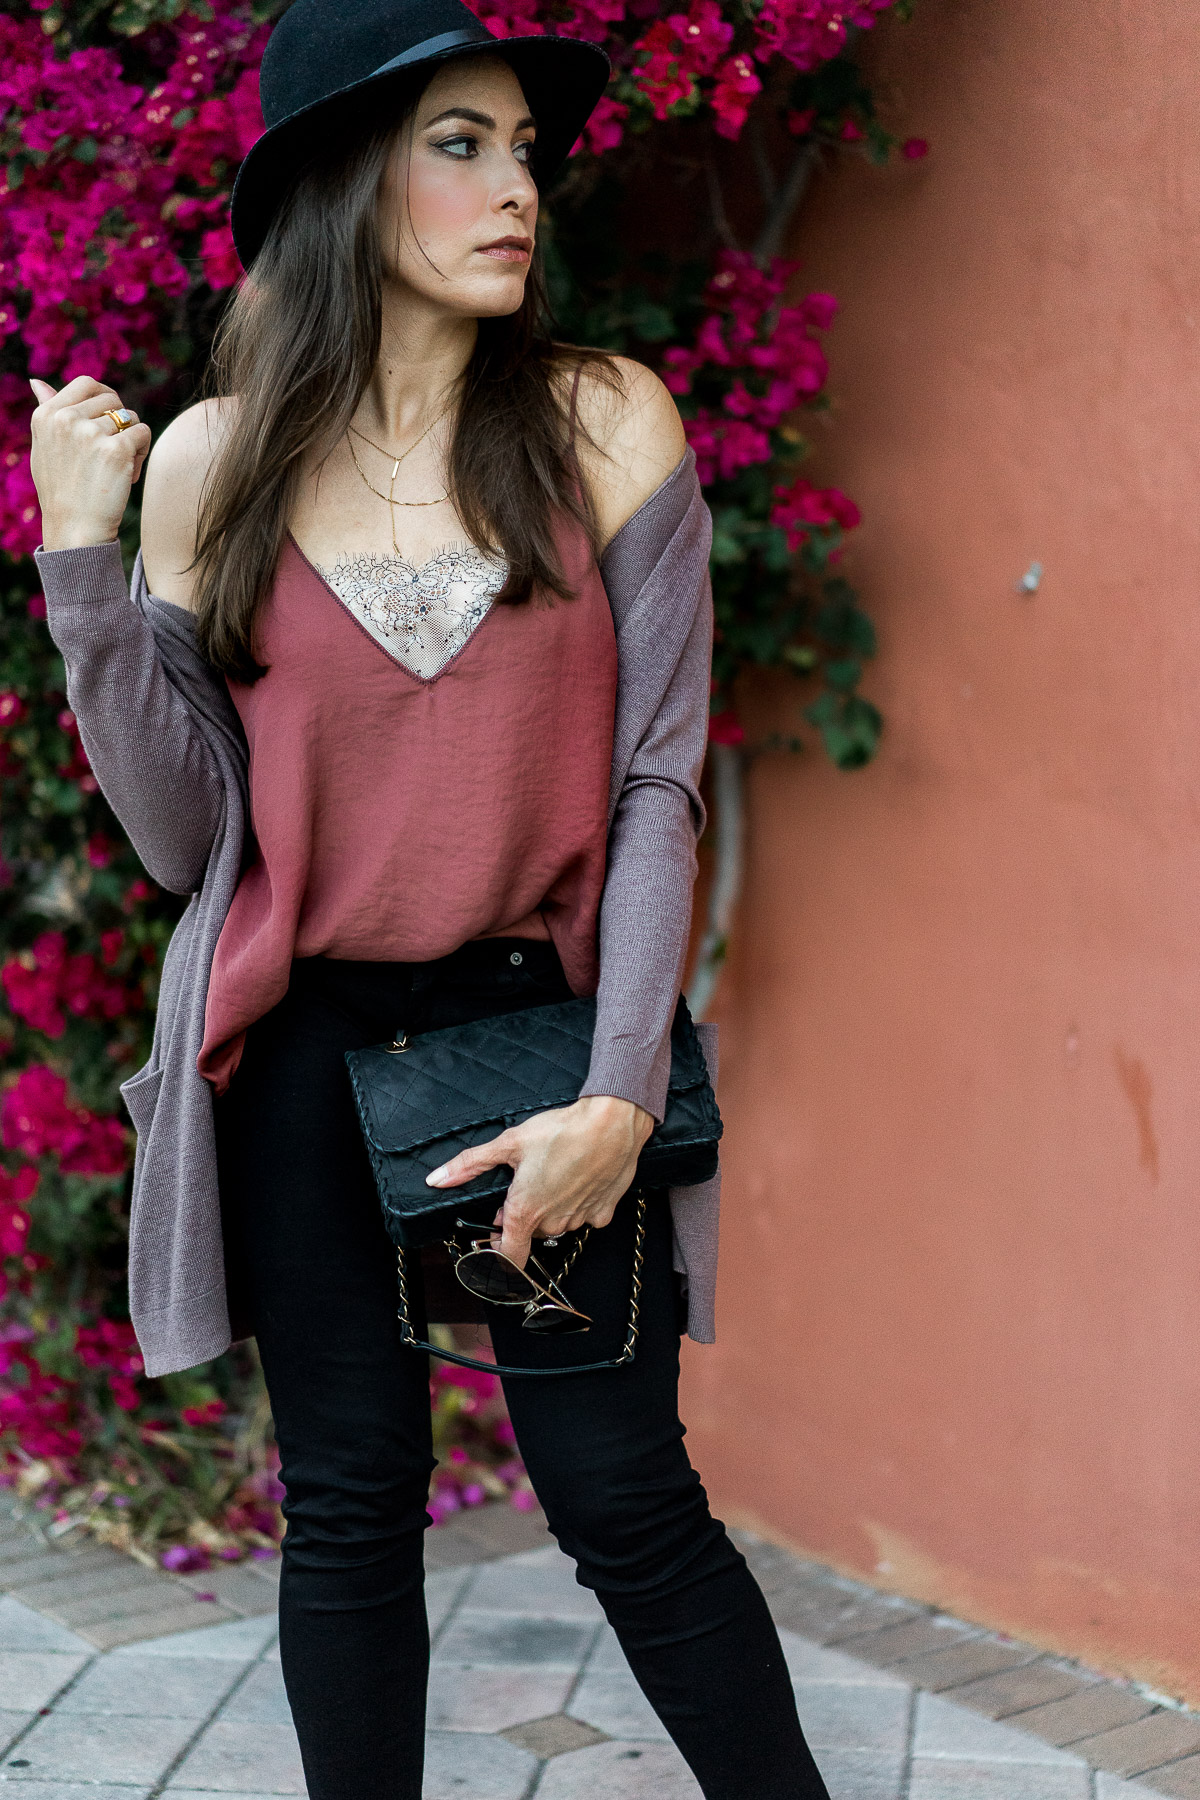 Free People Deep V lace cami worn with Old Navy open front cardigan as shown by South Florida blogger Amanda from AGlamLifestyle